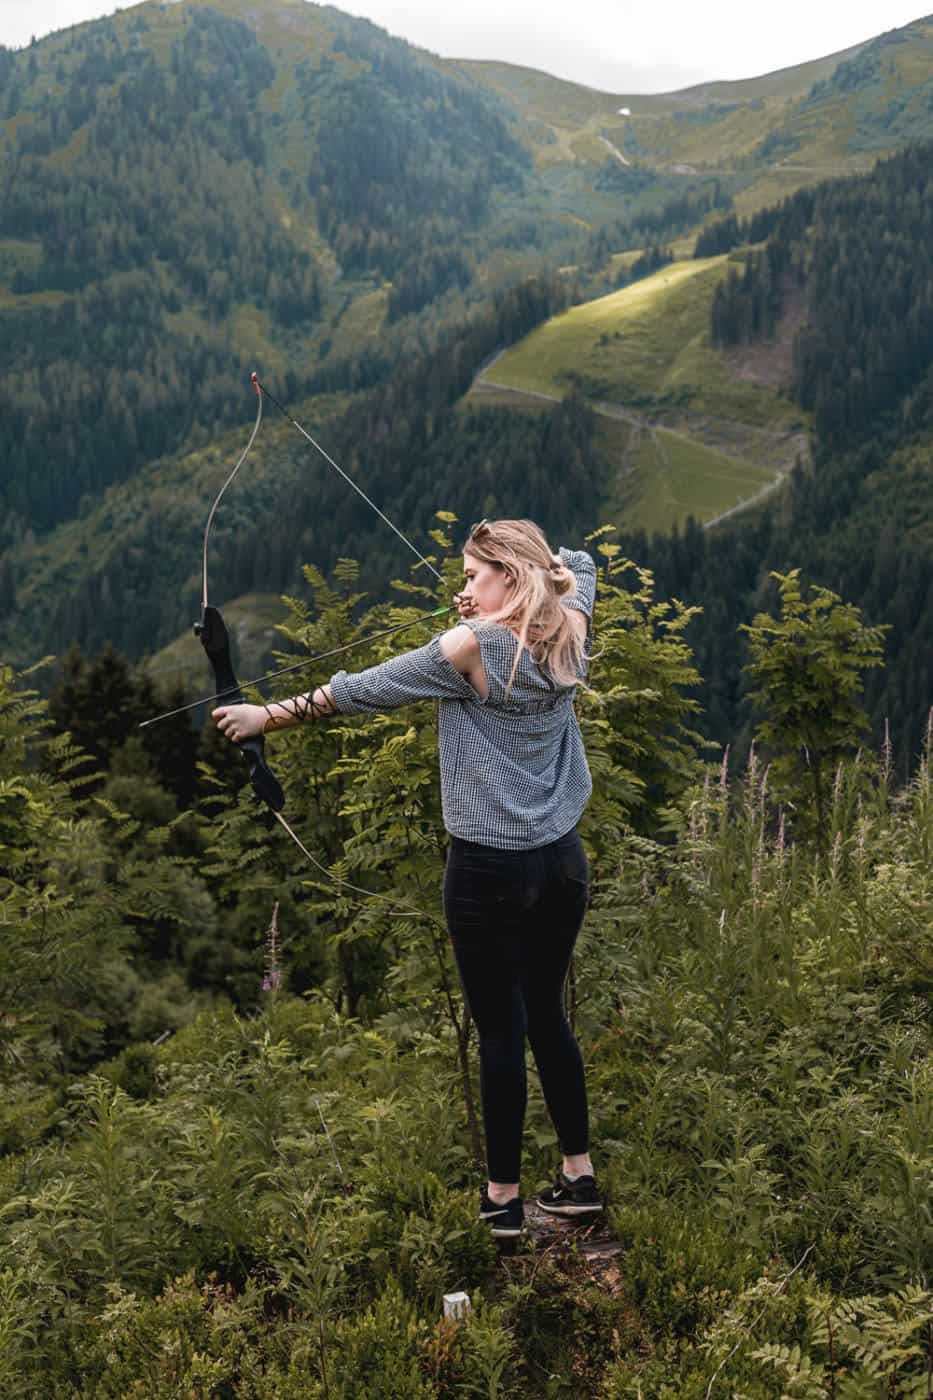 Archery and lunch at Sonnhof hotel during summer in Saalbach Austria